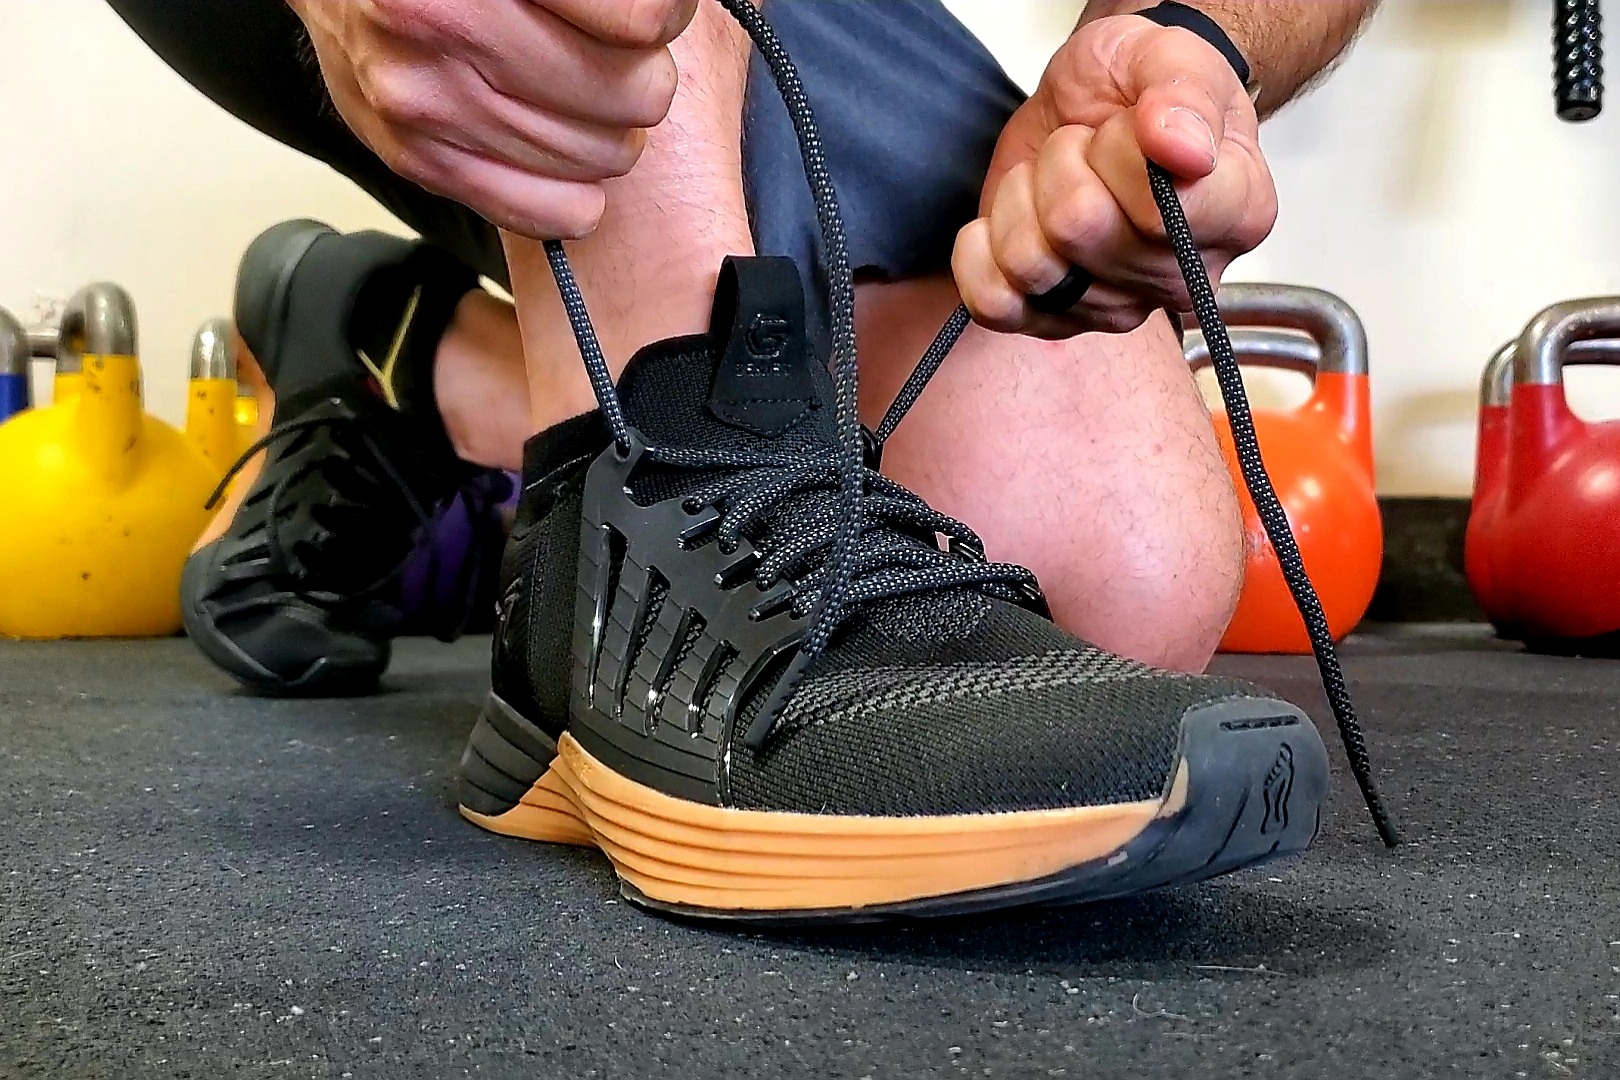 Best Workout Shoes for the Gym in 2020